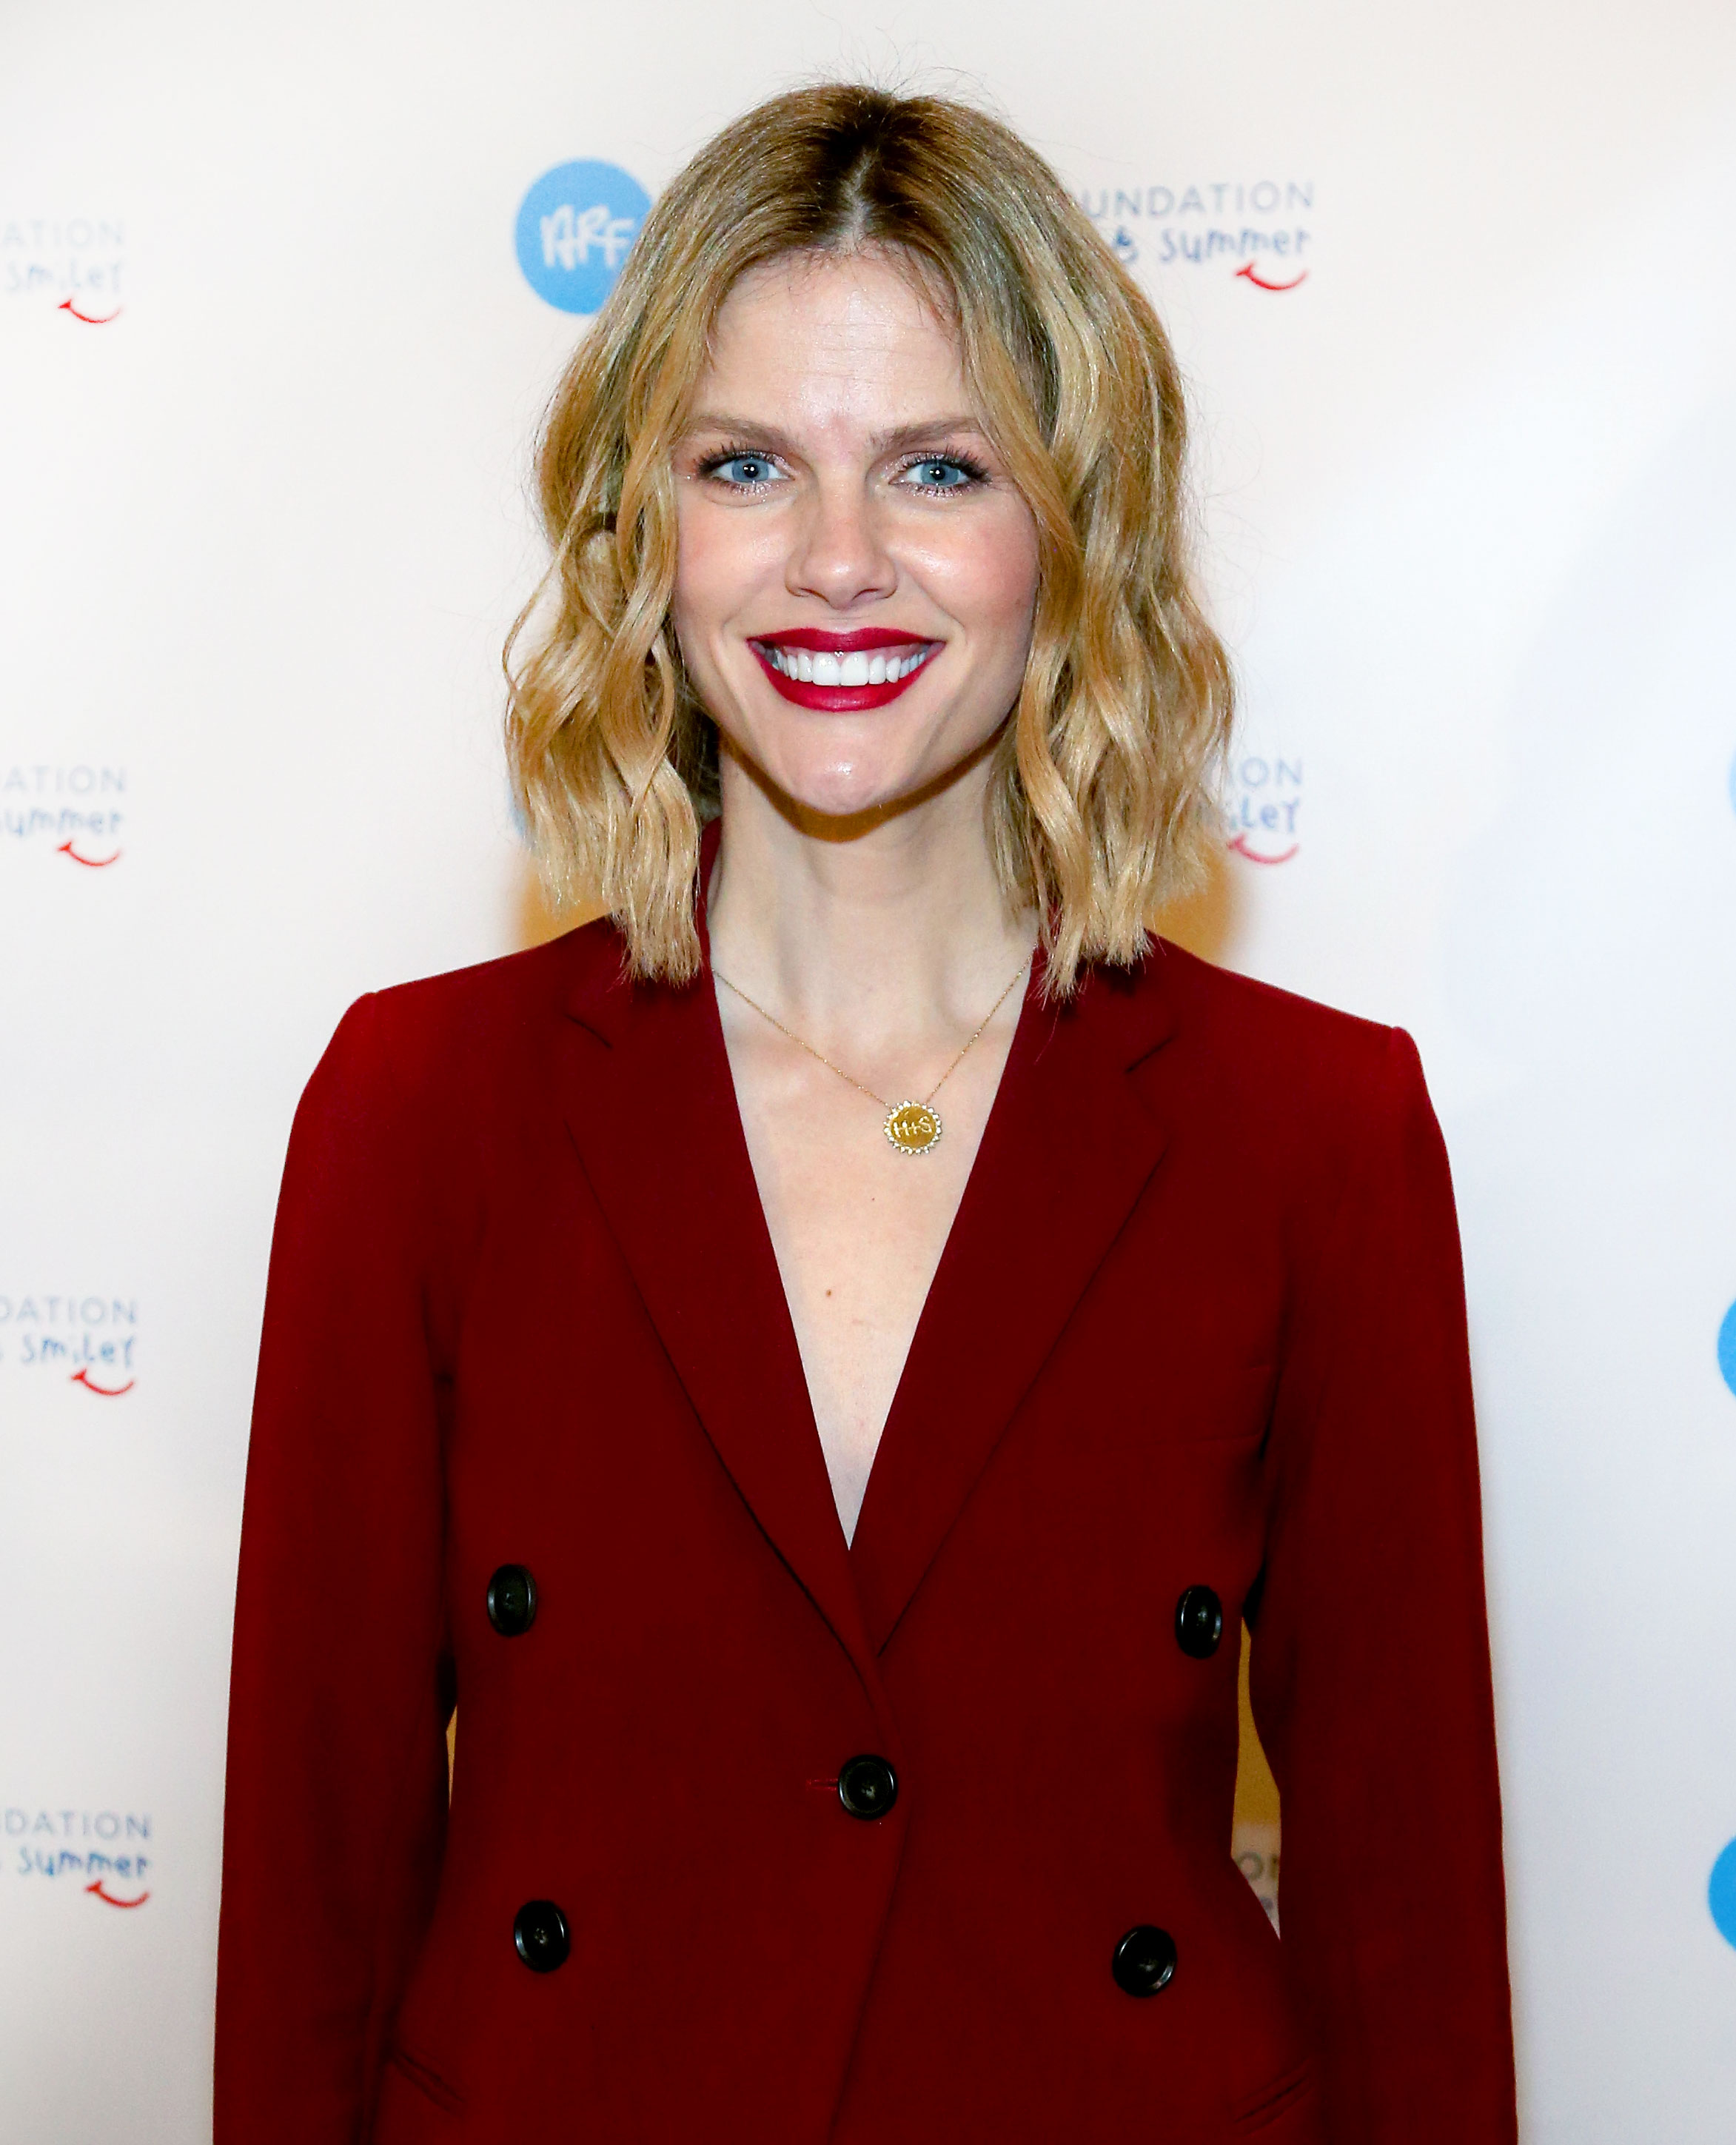 """brooklyn-decker- - AUSTIN, TEXAS – SEPTEMBER 17: Brooklyn Decker attends the """"Roger Federer Comes To Austin event benefitting the Andy Roddick Foundation at the Paramount Theatre on September 17, 2018 in Austin, Texas. (Photo by Gary Miller/Getty Images)"""